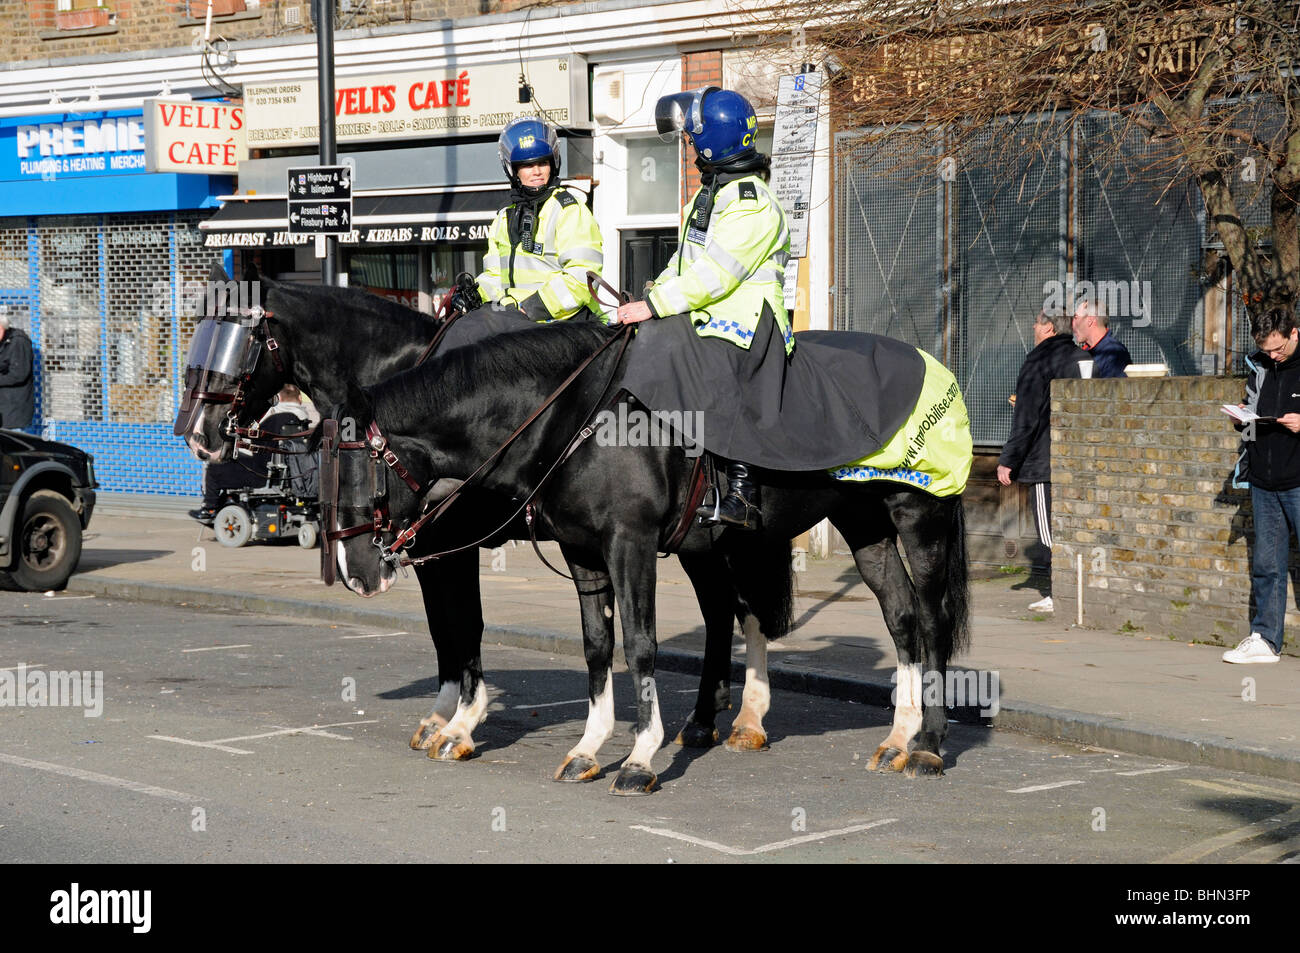 Police Horses with female riders policing an Arsenal match Highbury London England UK - Stock Image